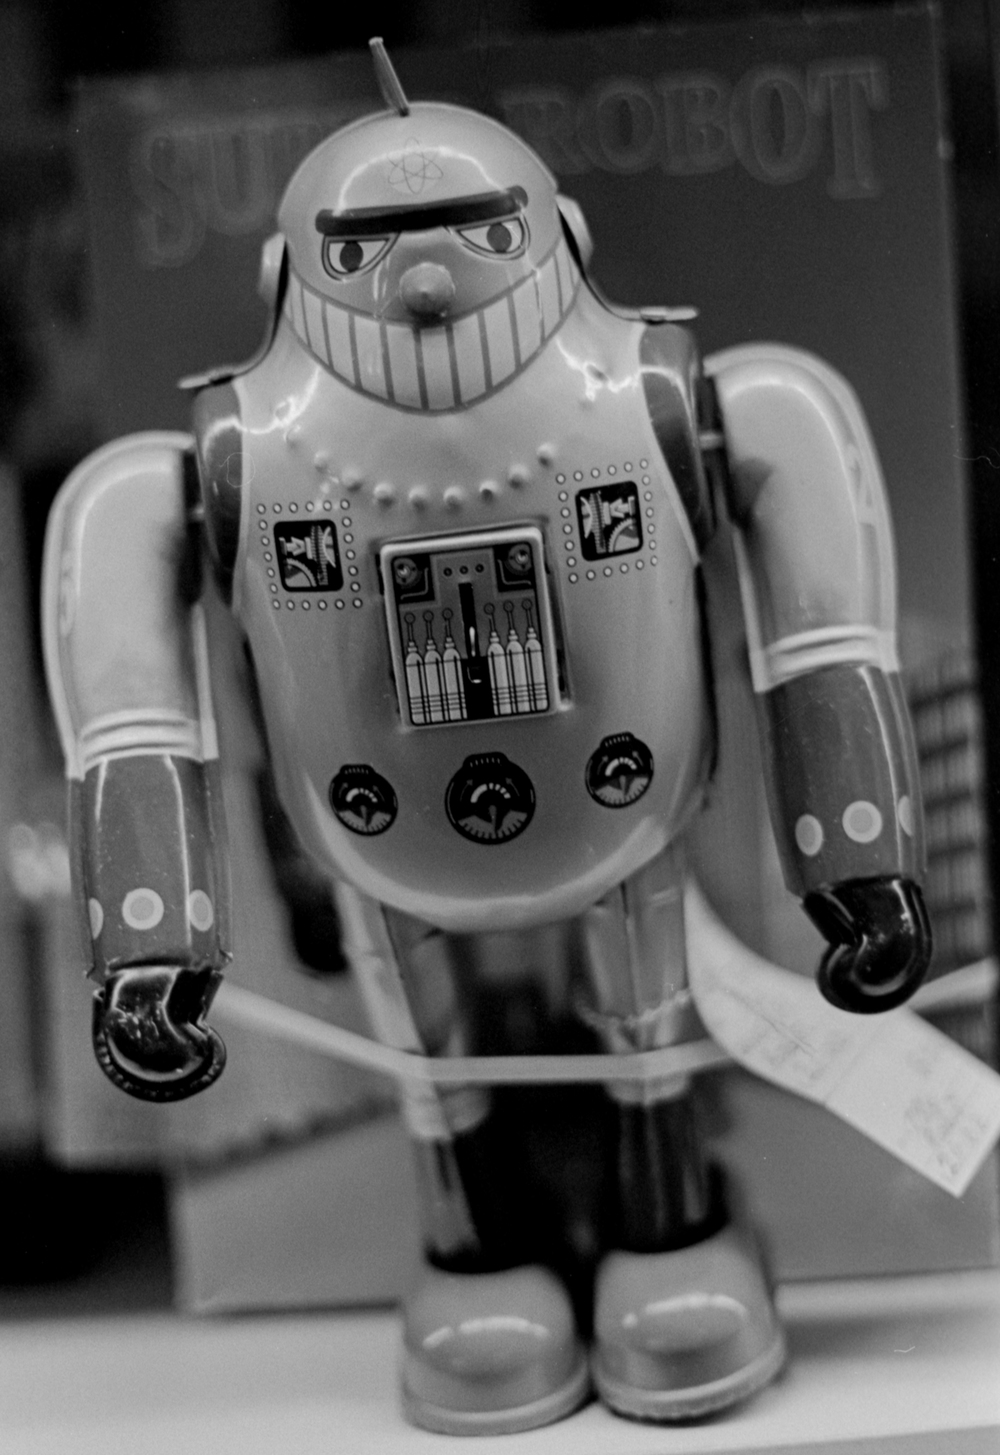 20 Aug 2016, Remake (I believe) of vintage tin robot toy, Country Antique Fair Mall, Santa Clarita, CA, Kodak Tr-X 400, Canon EOS-1, Developed (D-76) and Scanned by me.